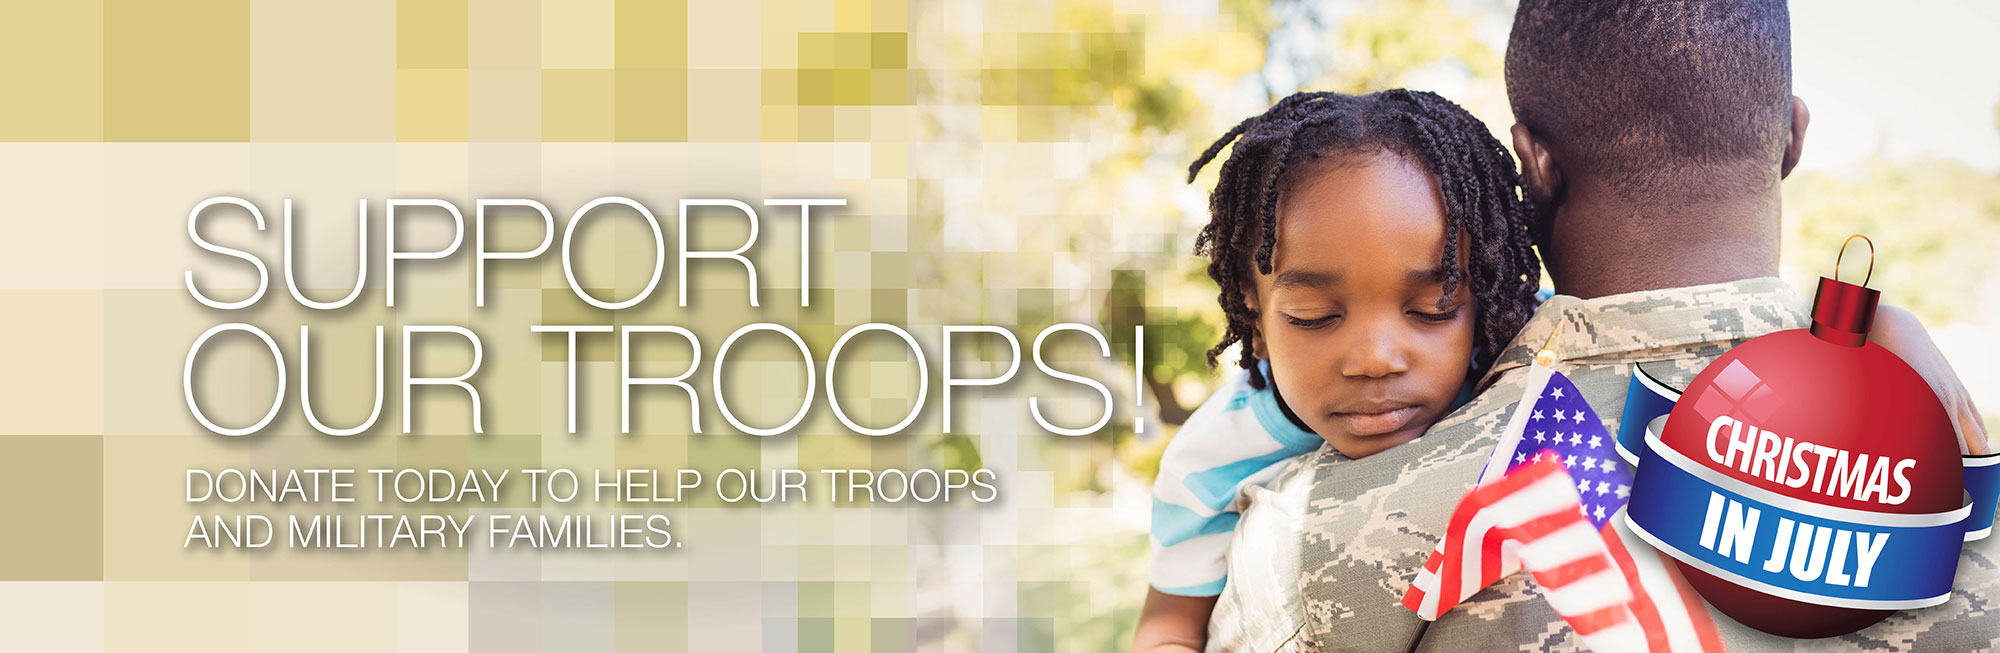 Please donate to our Christmas in July Drive and help support out troops and military families.